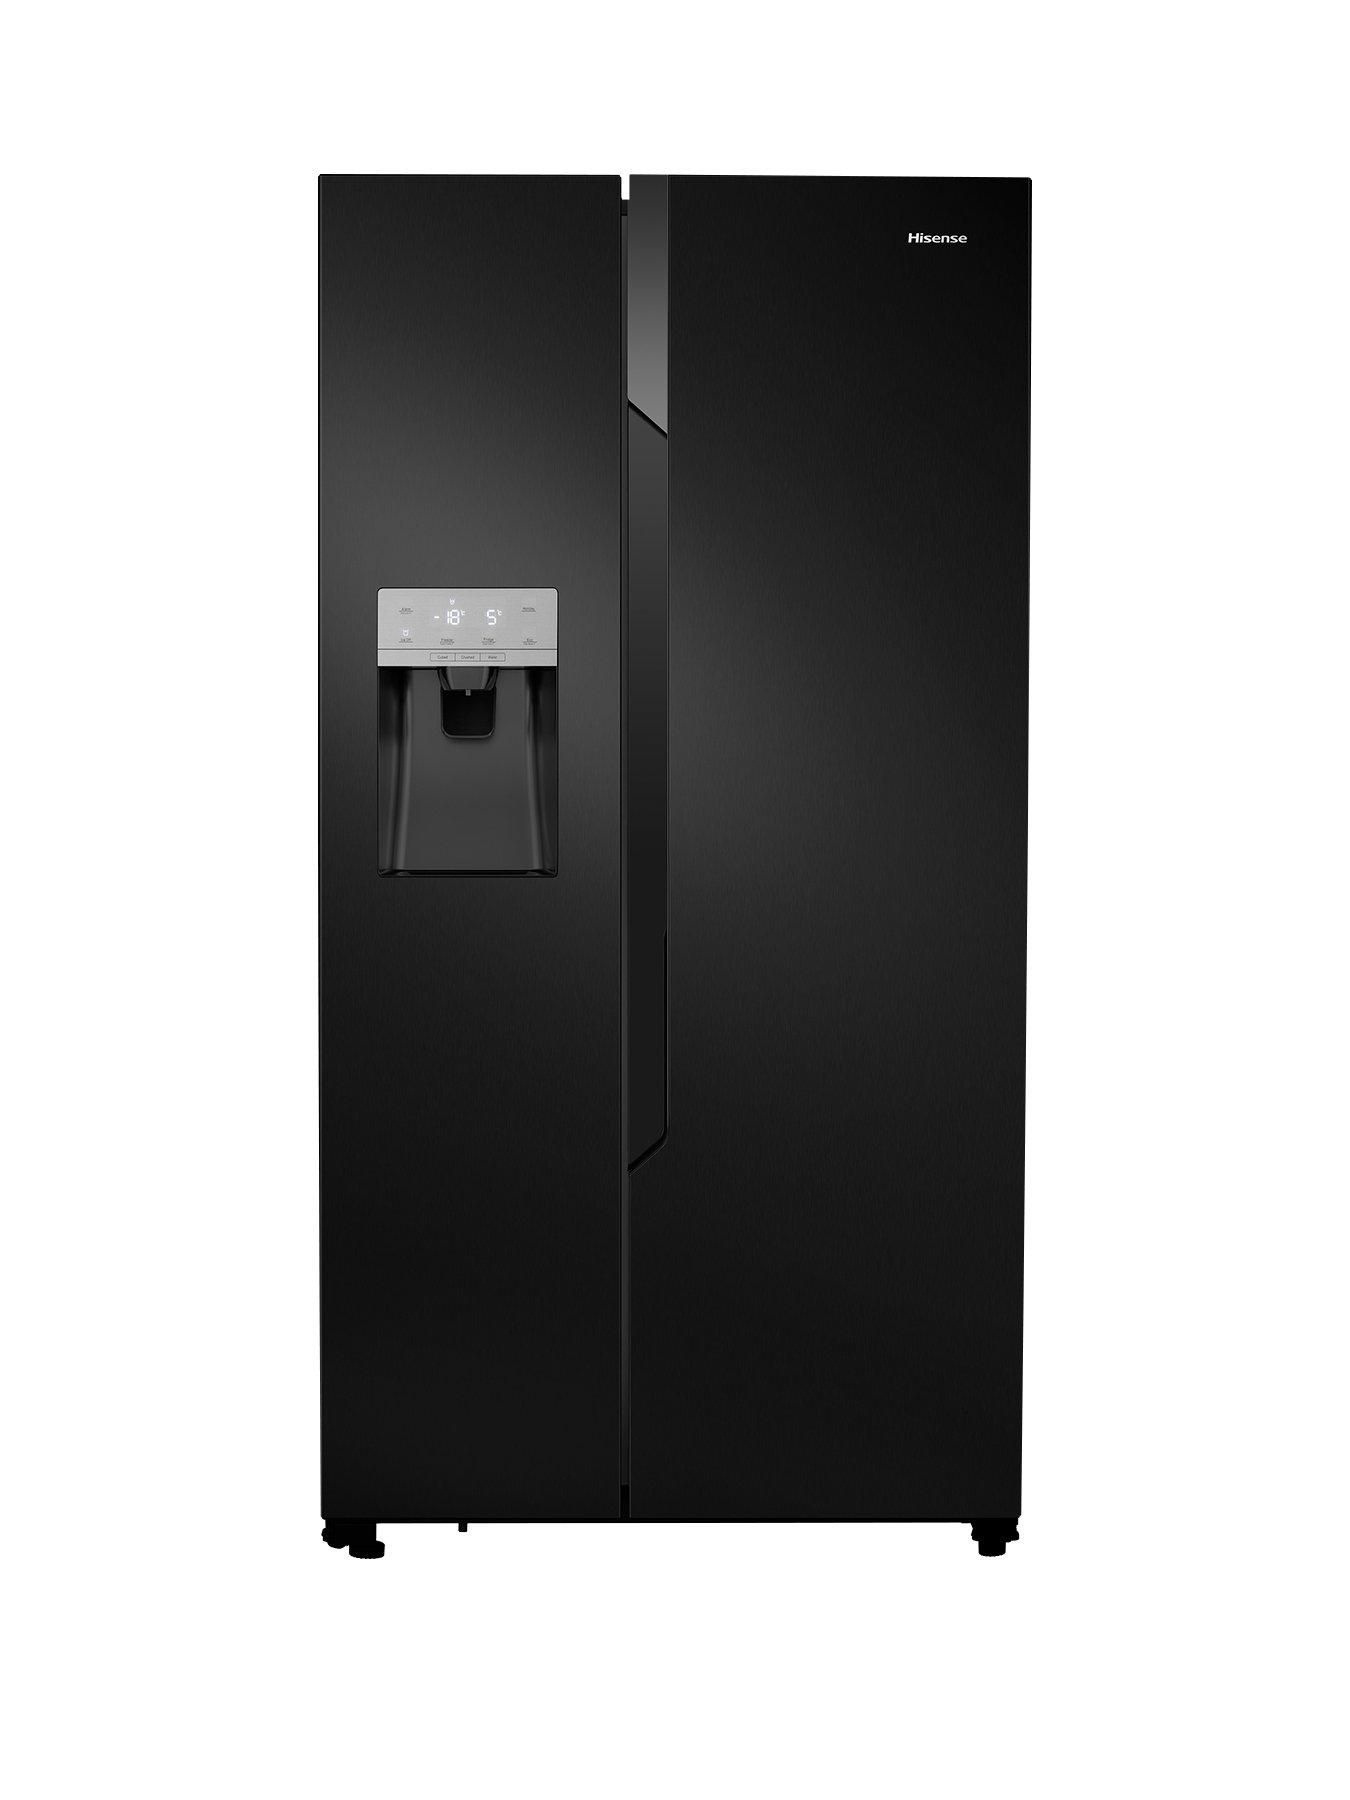 Rs694n4tb1 Total No Frost American Style Fridge Freezer With Water Ice Dispenser Black American Fridge Freezers American Fridge American Style Fridge Freezer